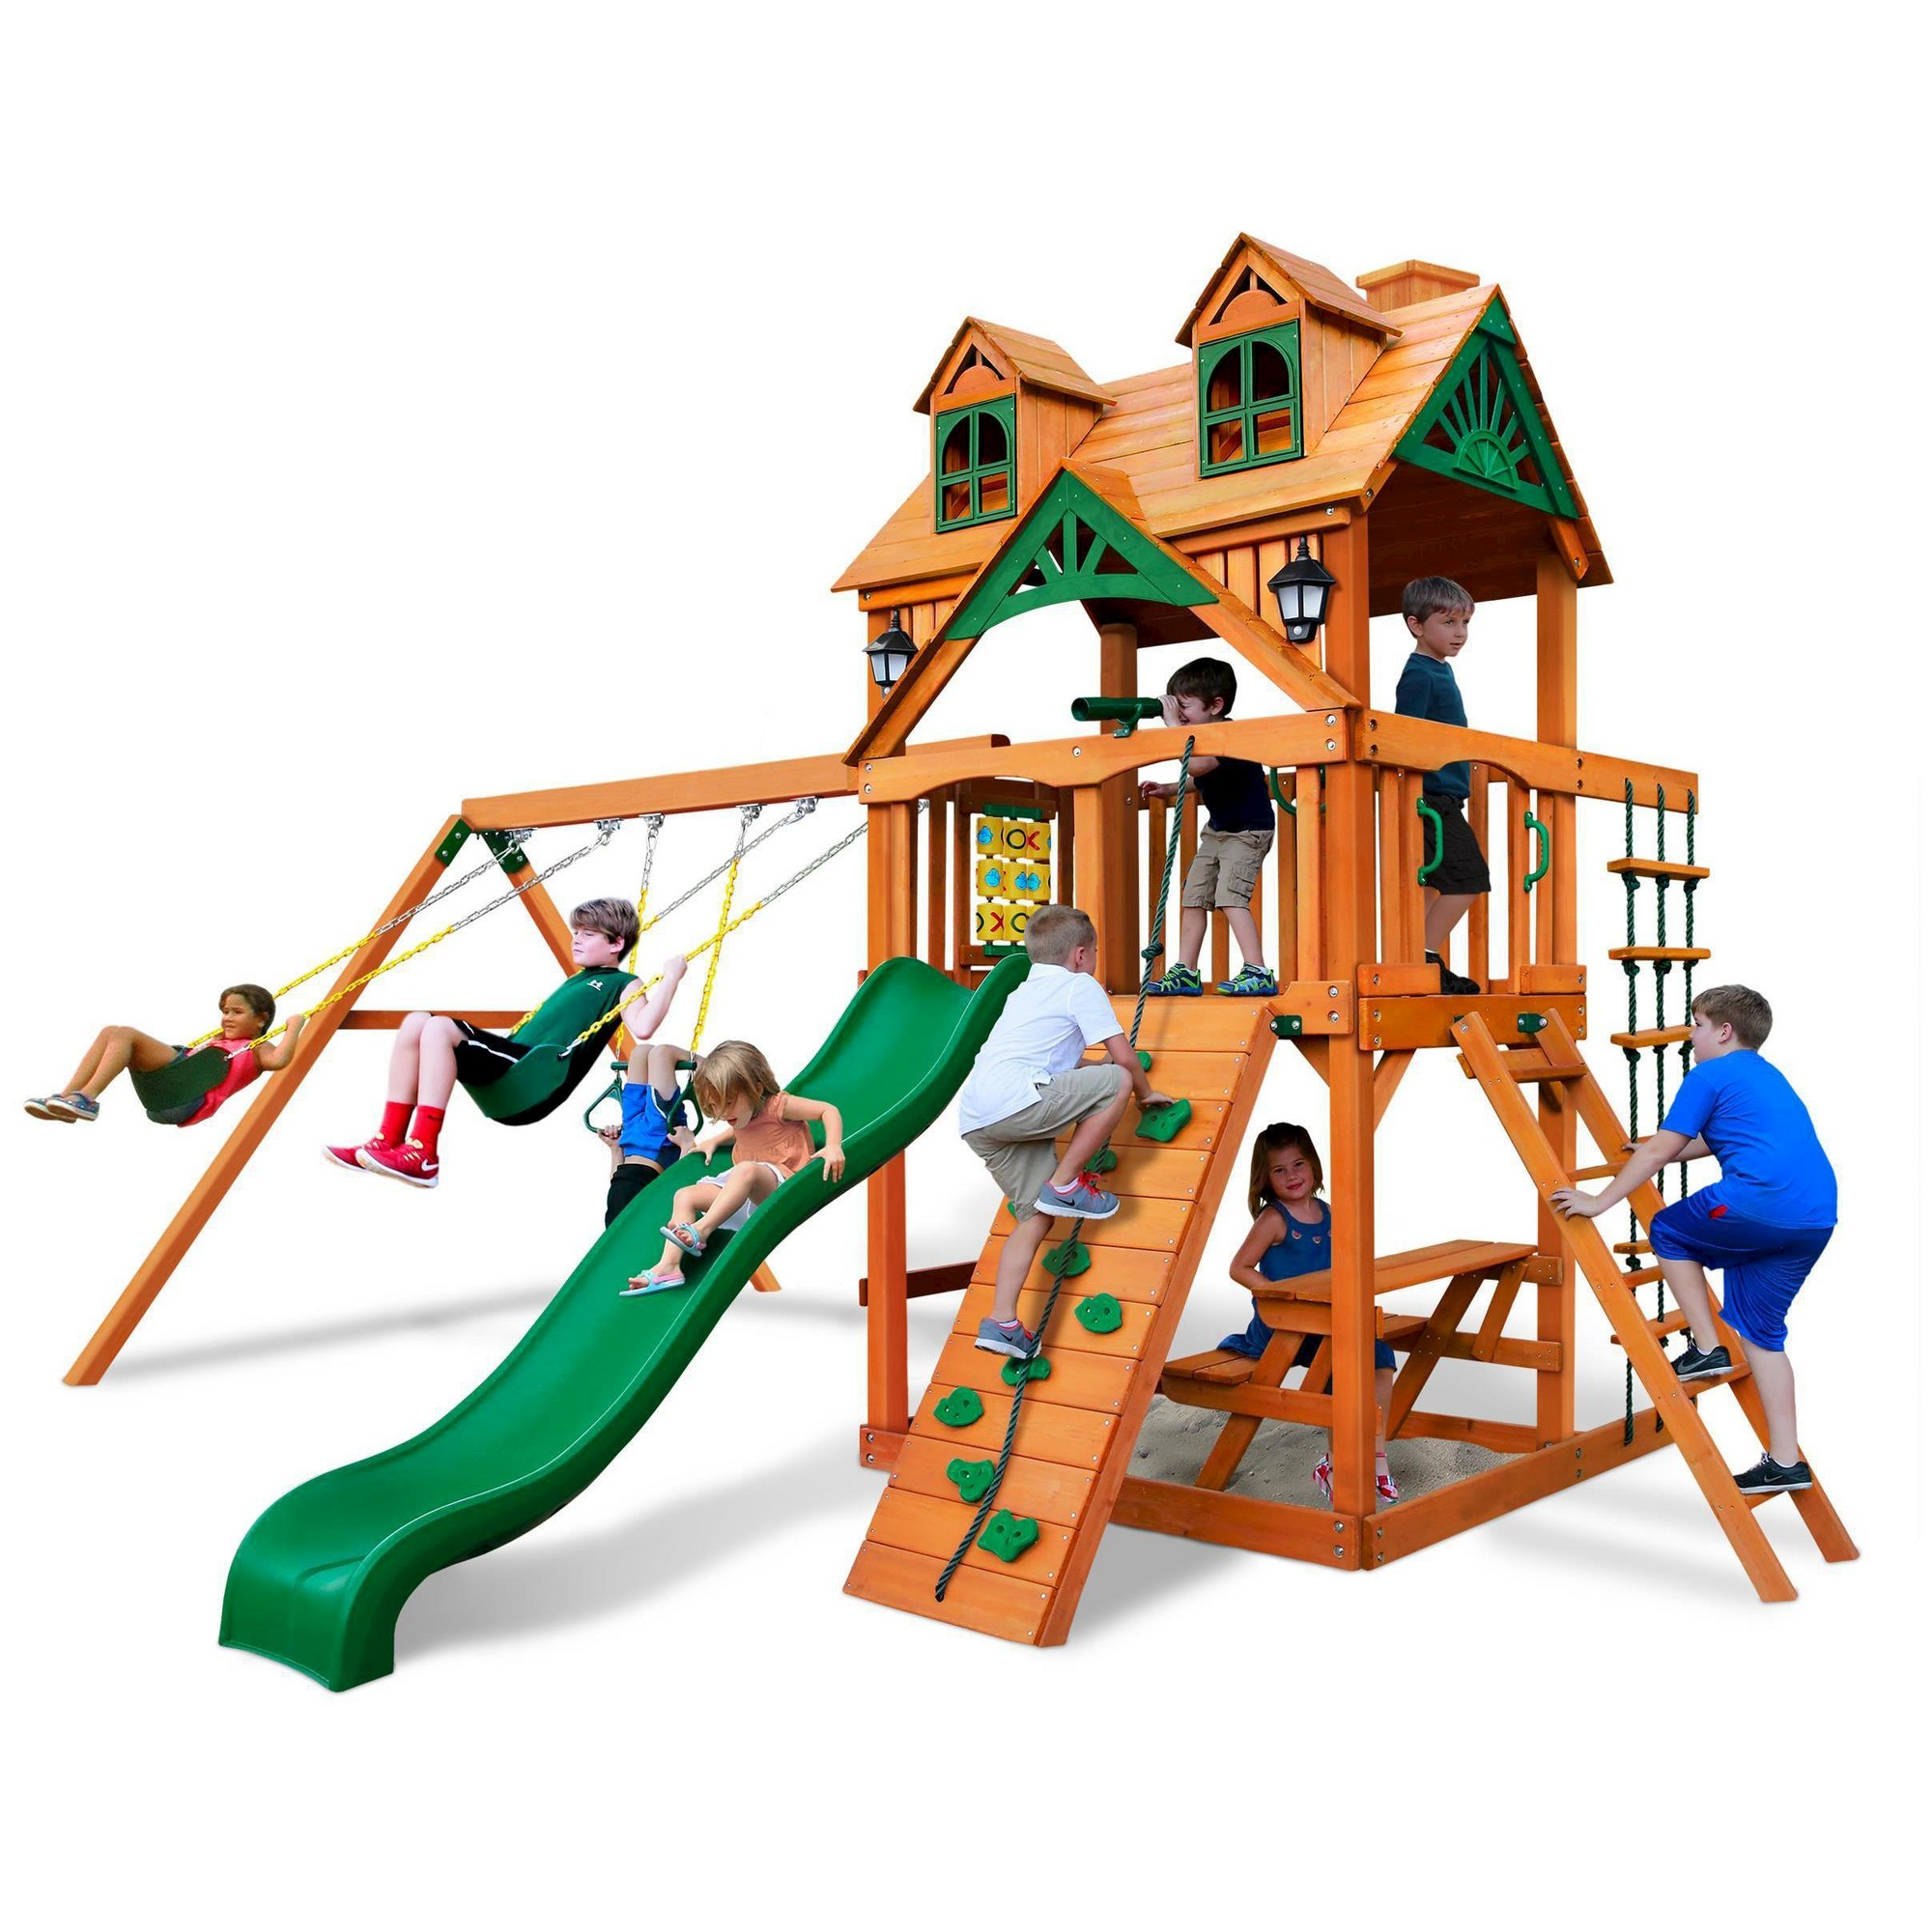 5b87fe8134d77 Gorilla Playsets Malibu Swing Set with Amber